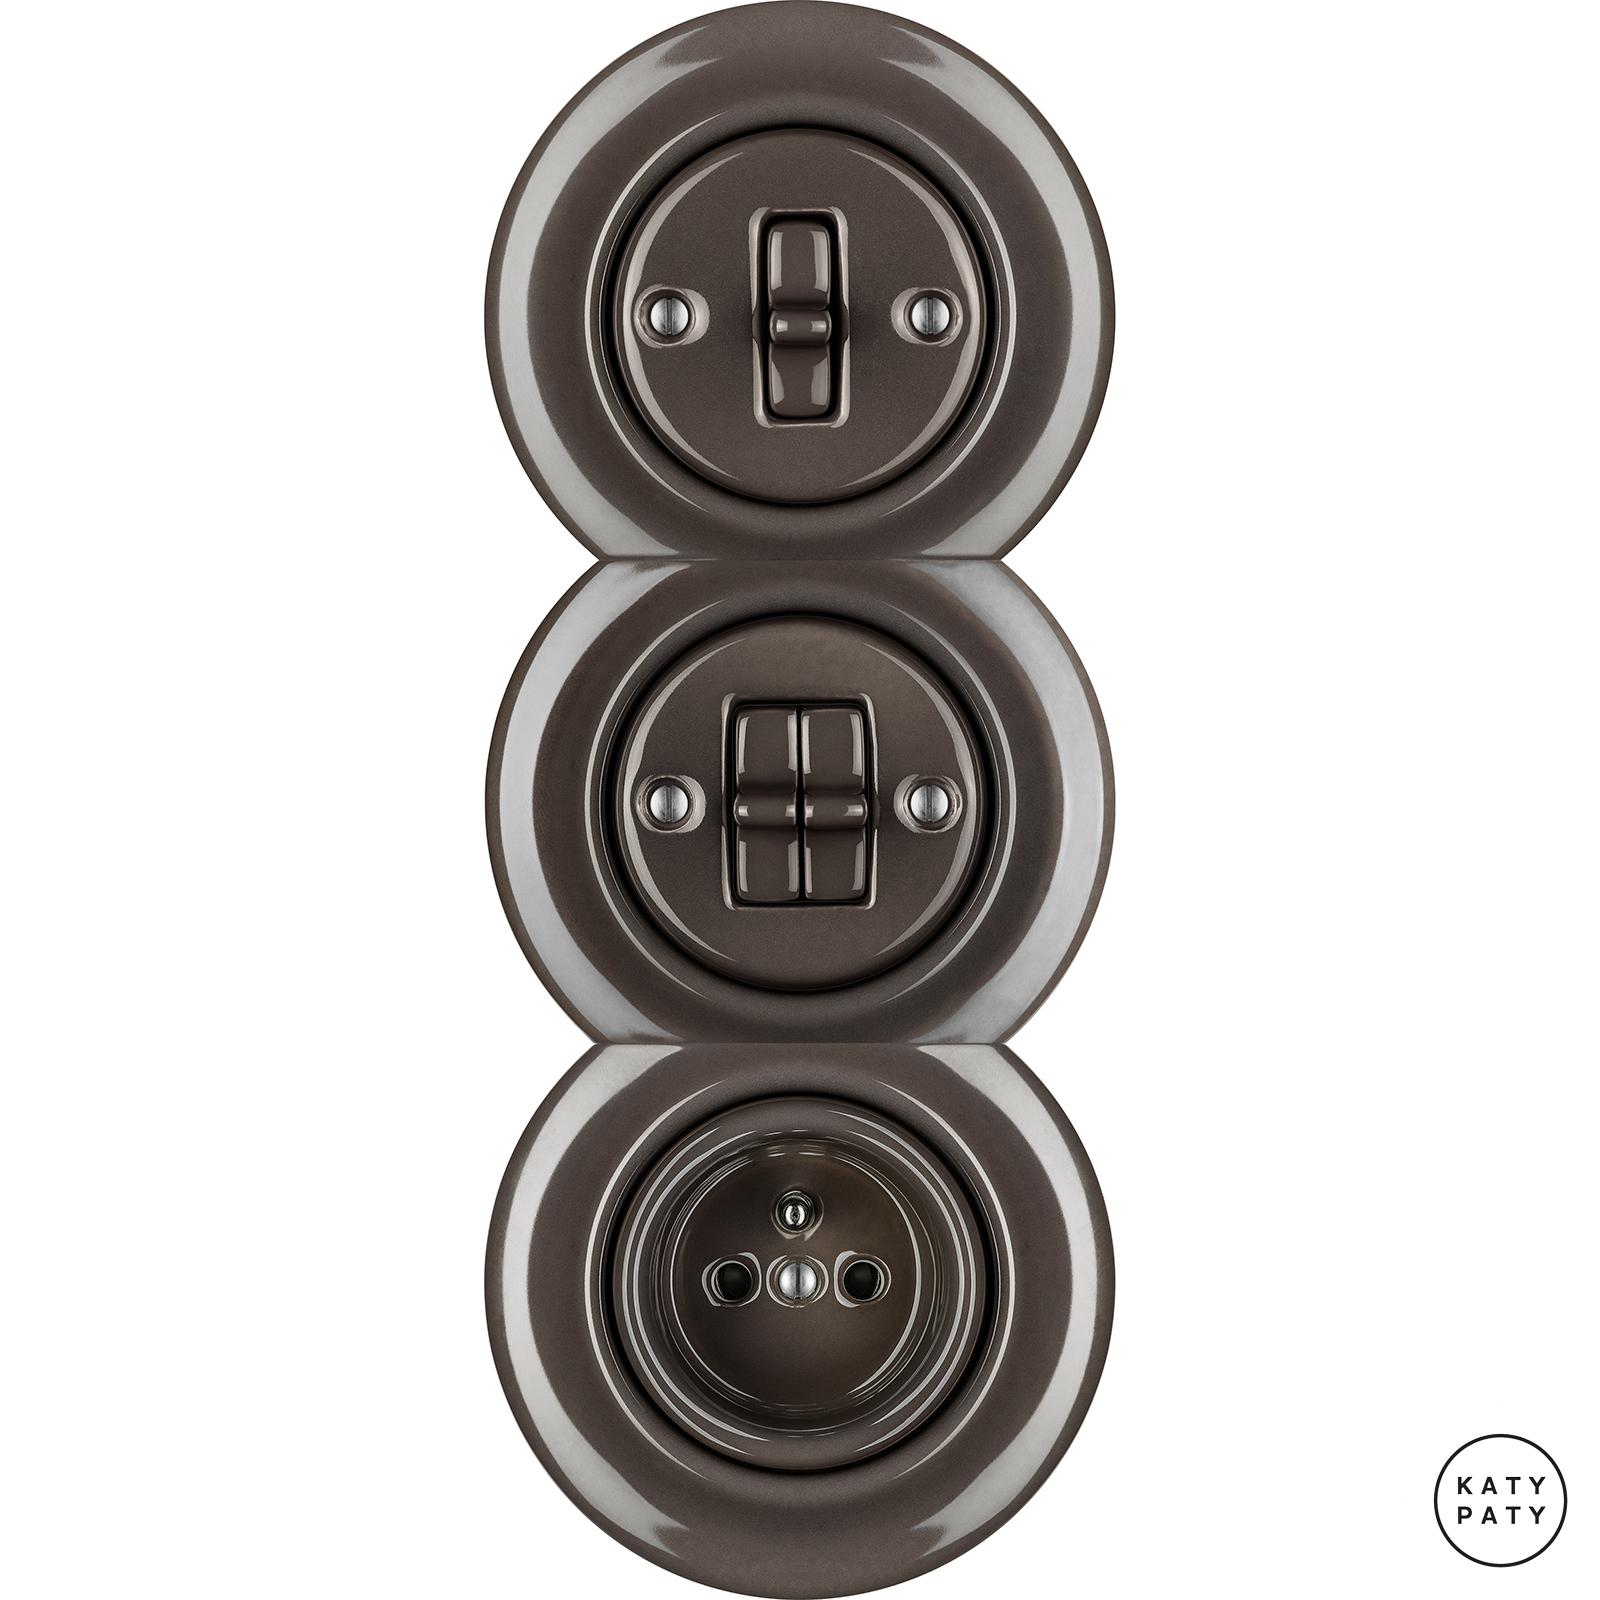 Porcelain toggle switches - a 2 gang - multiple X ()  - BRUNETUM | Katy Paty